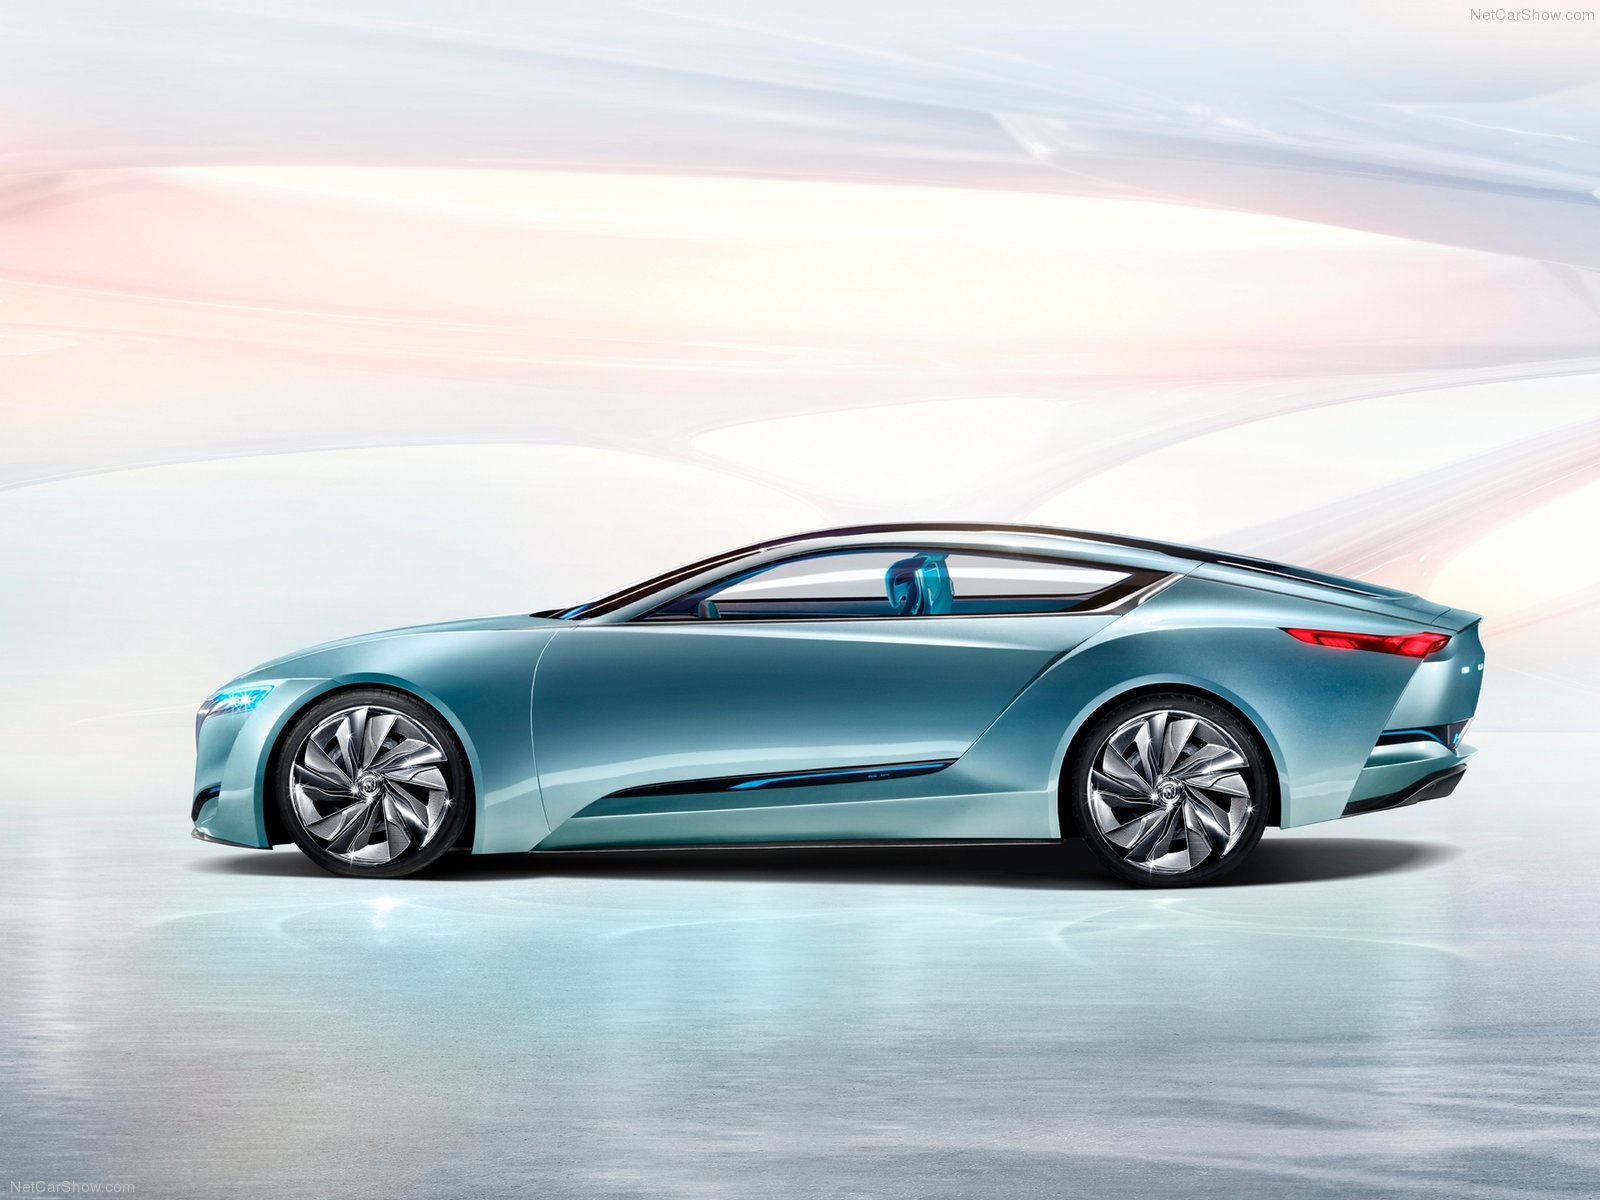 2013 Buick Riviera Concept Review Spec Release Date Picture And Price Autocarsblitz